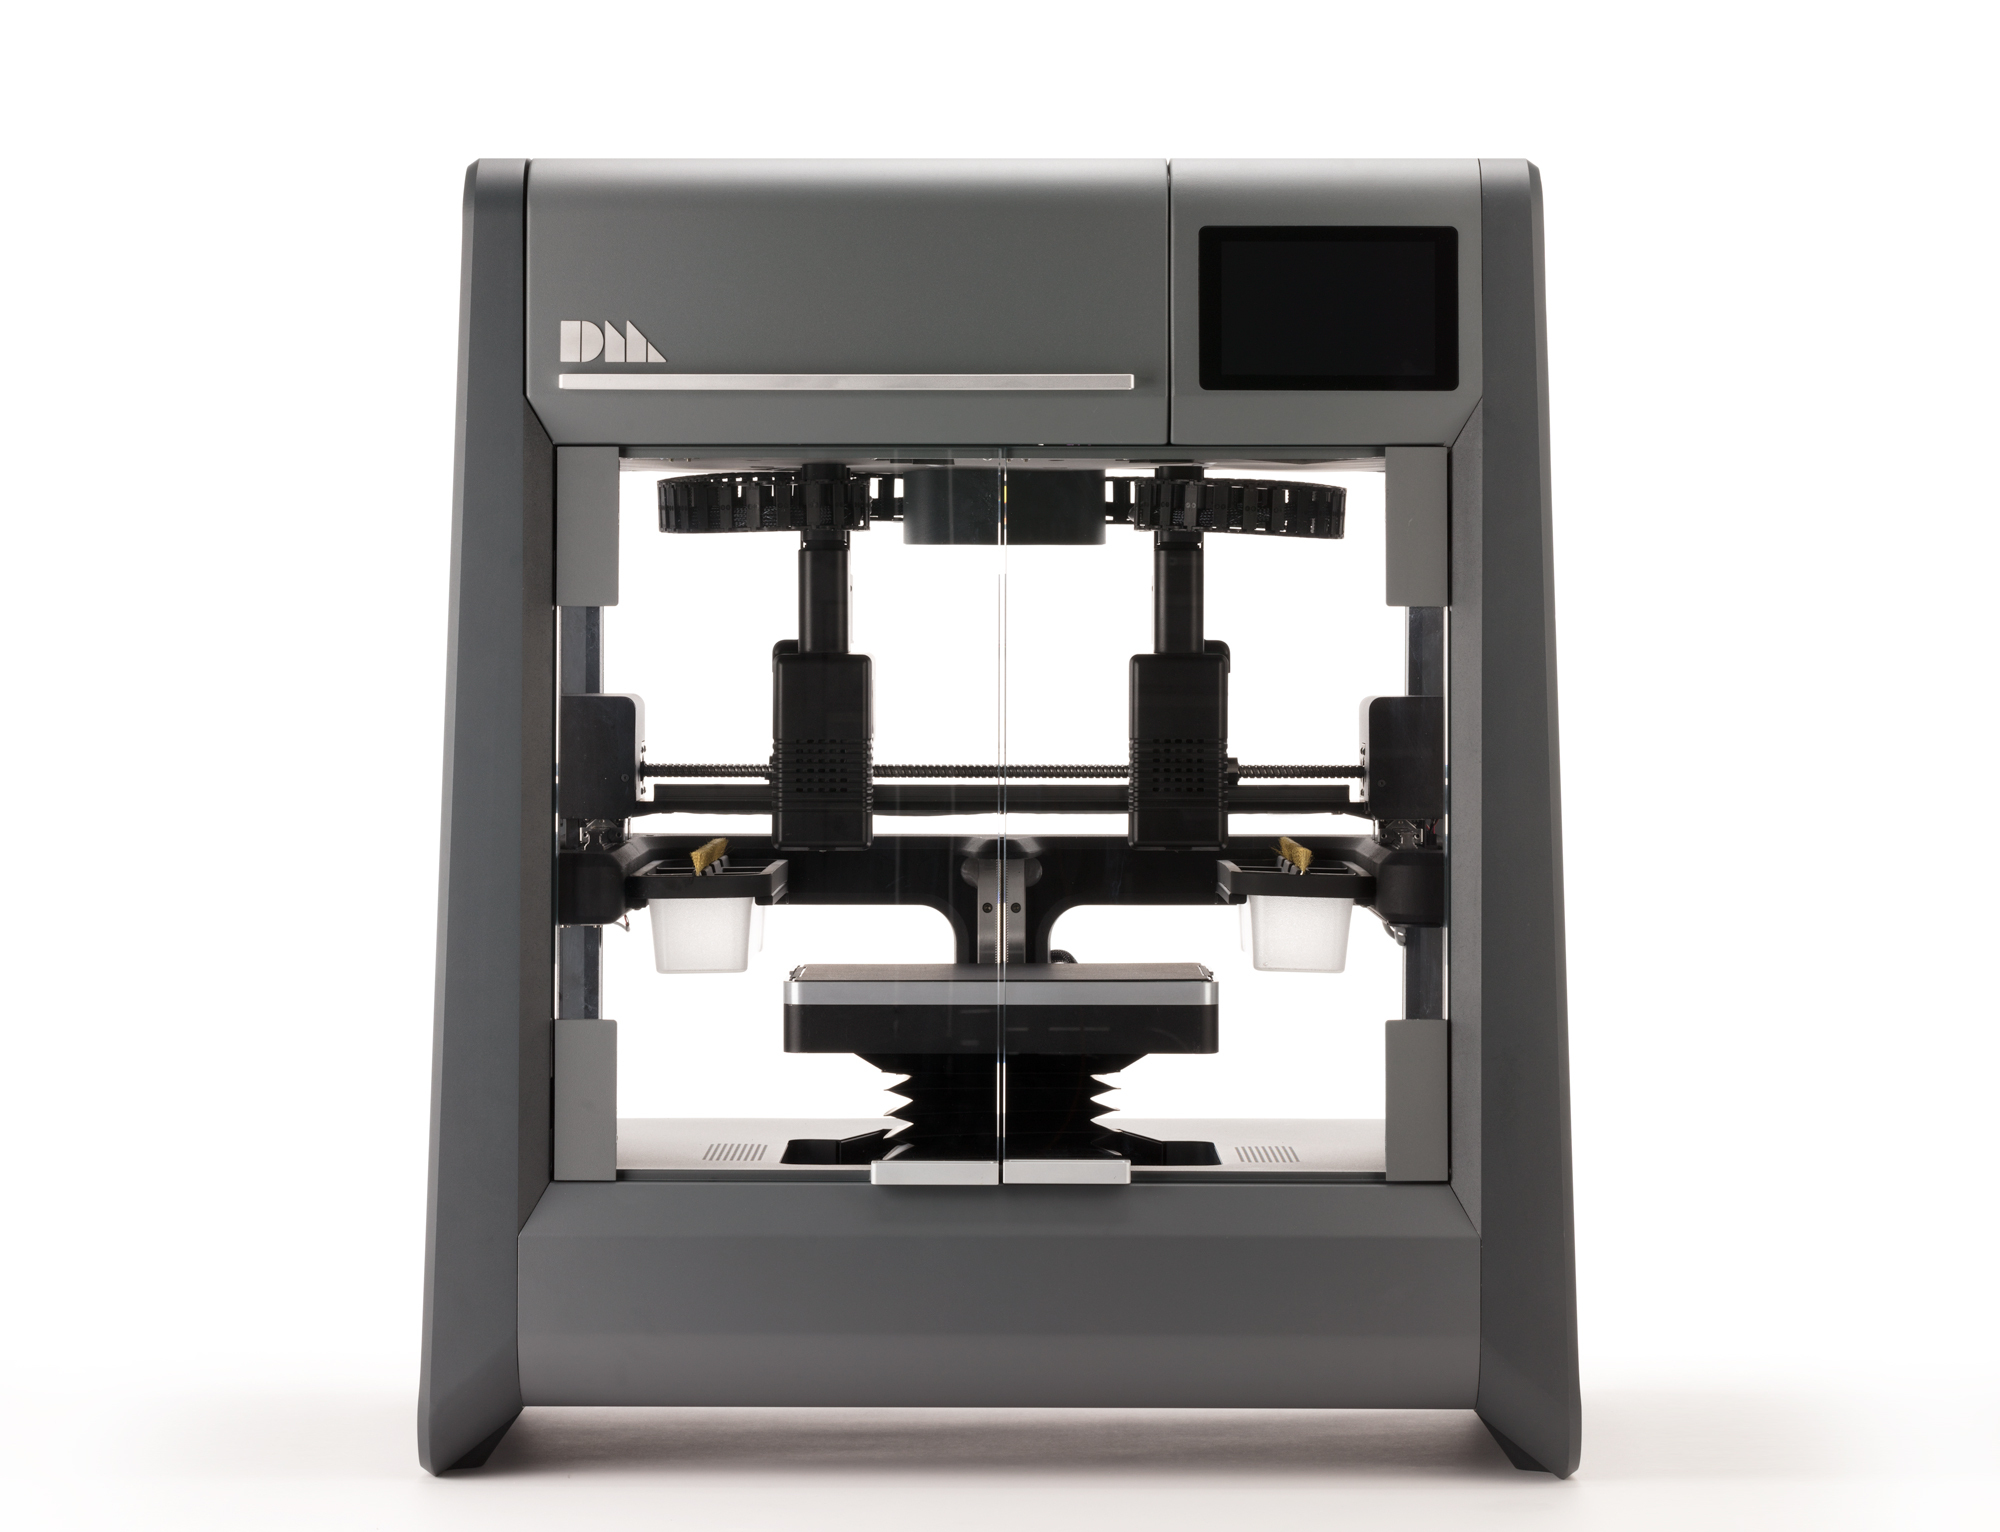 The DM Studio System is the first office-friendly metal 3D printing system. (Photo: Desktop Metal)